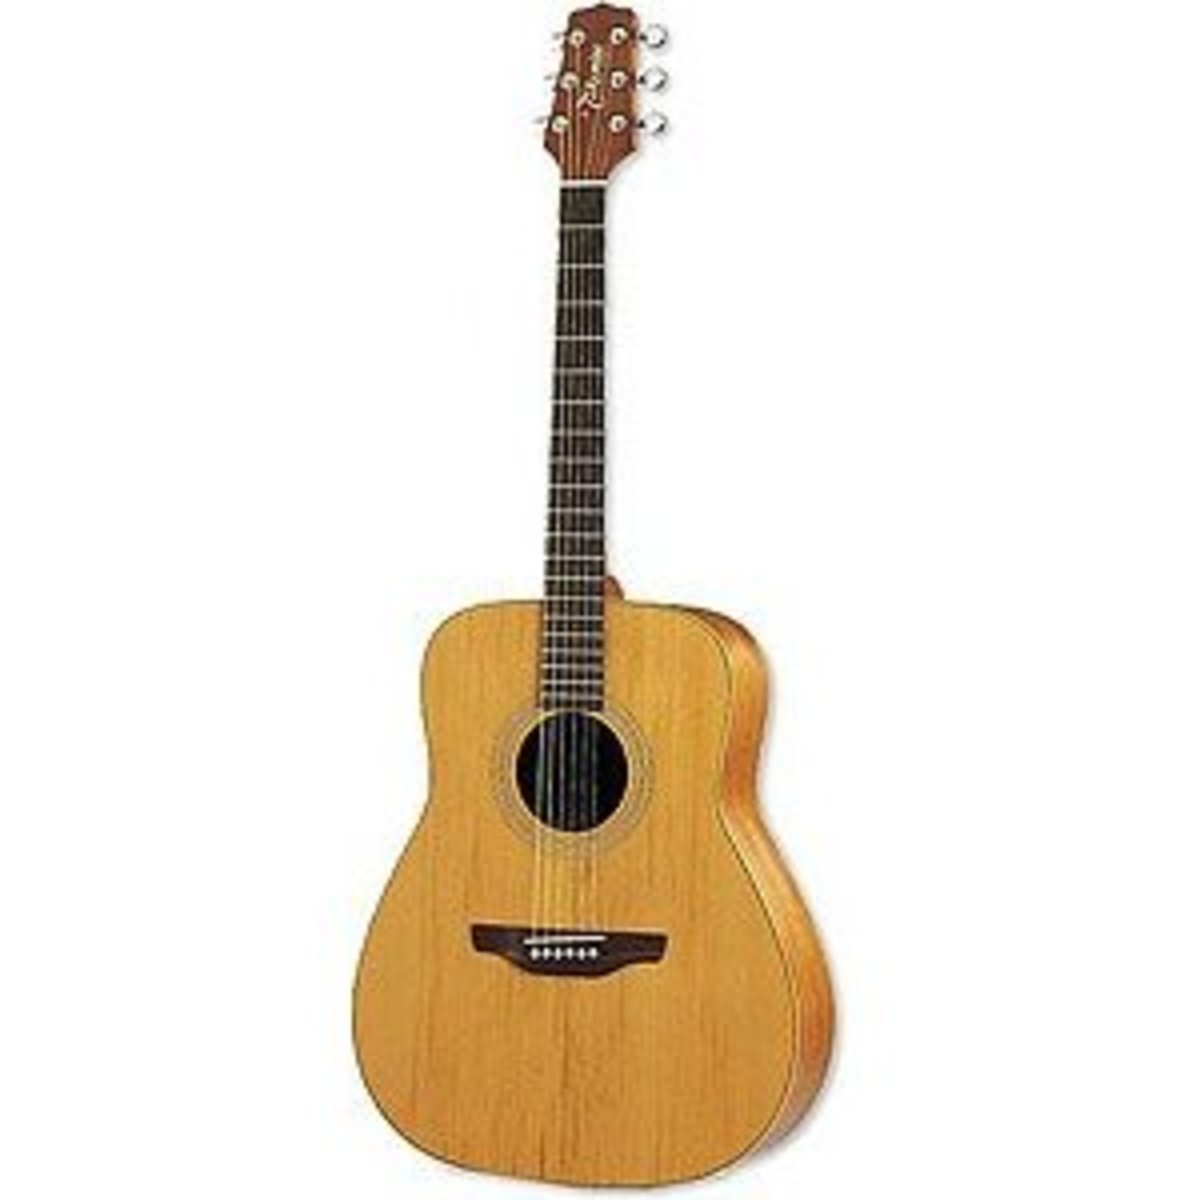 Dreadnoughts are the standard acoustic guitar body shape.